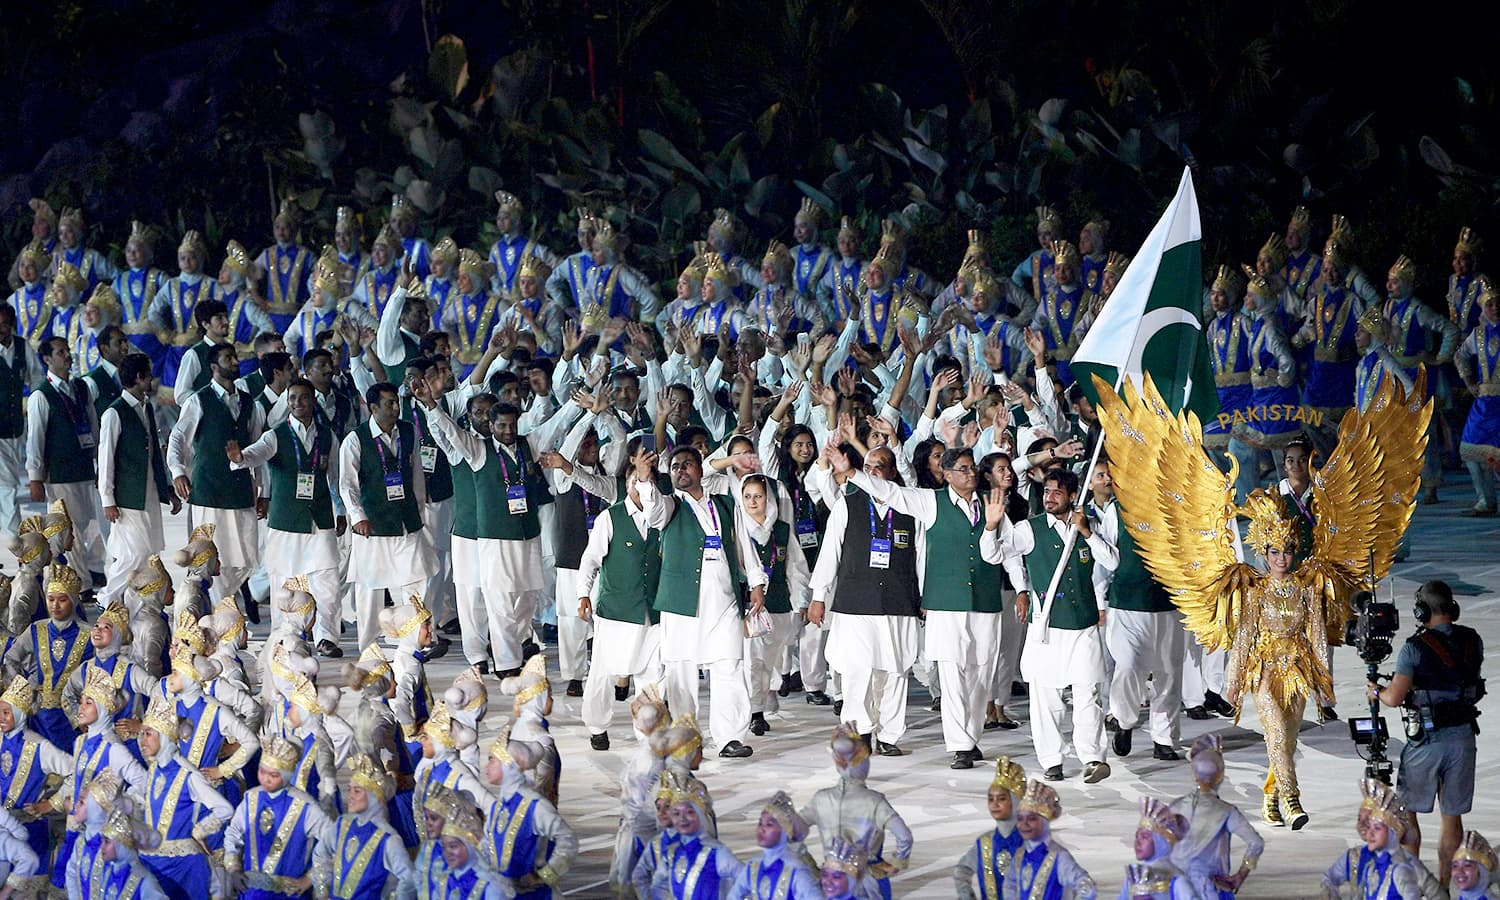 Pakistan's delegation waves to a packed crowd during the opening ceremony of the 2018 Asian Games. —AFP